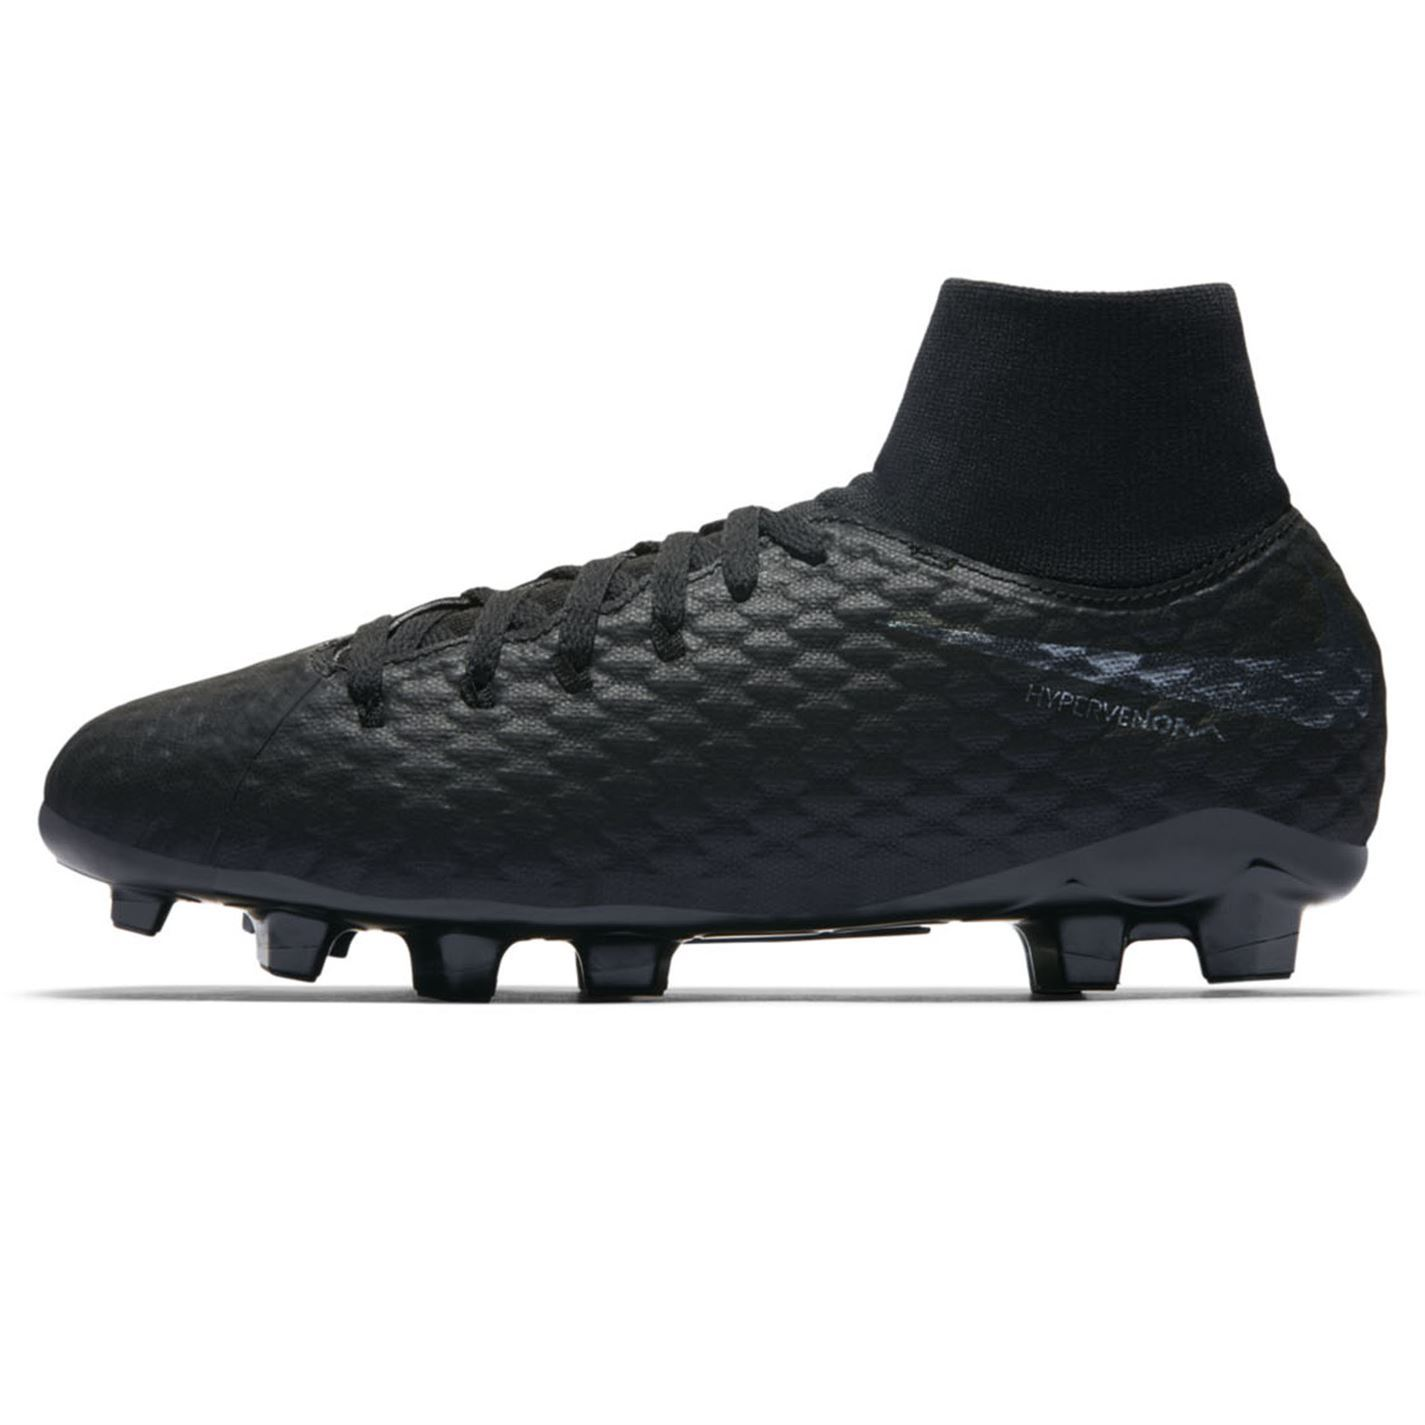 5275f233902 Nike Hypervenom Phantom Academy Firm Ground Football Boots Juniors ...